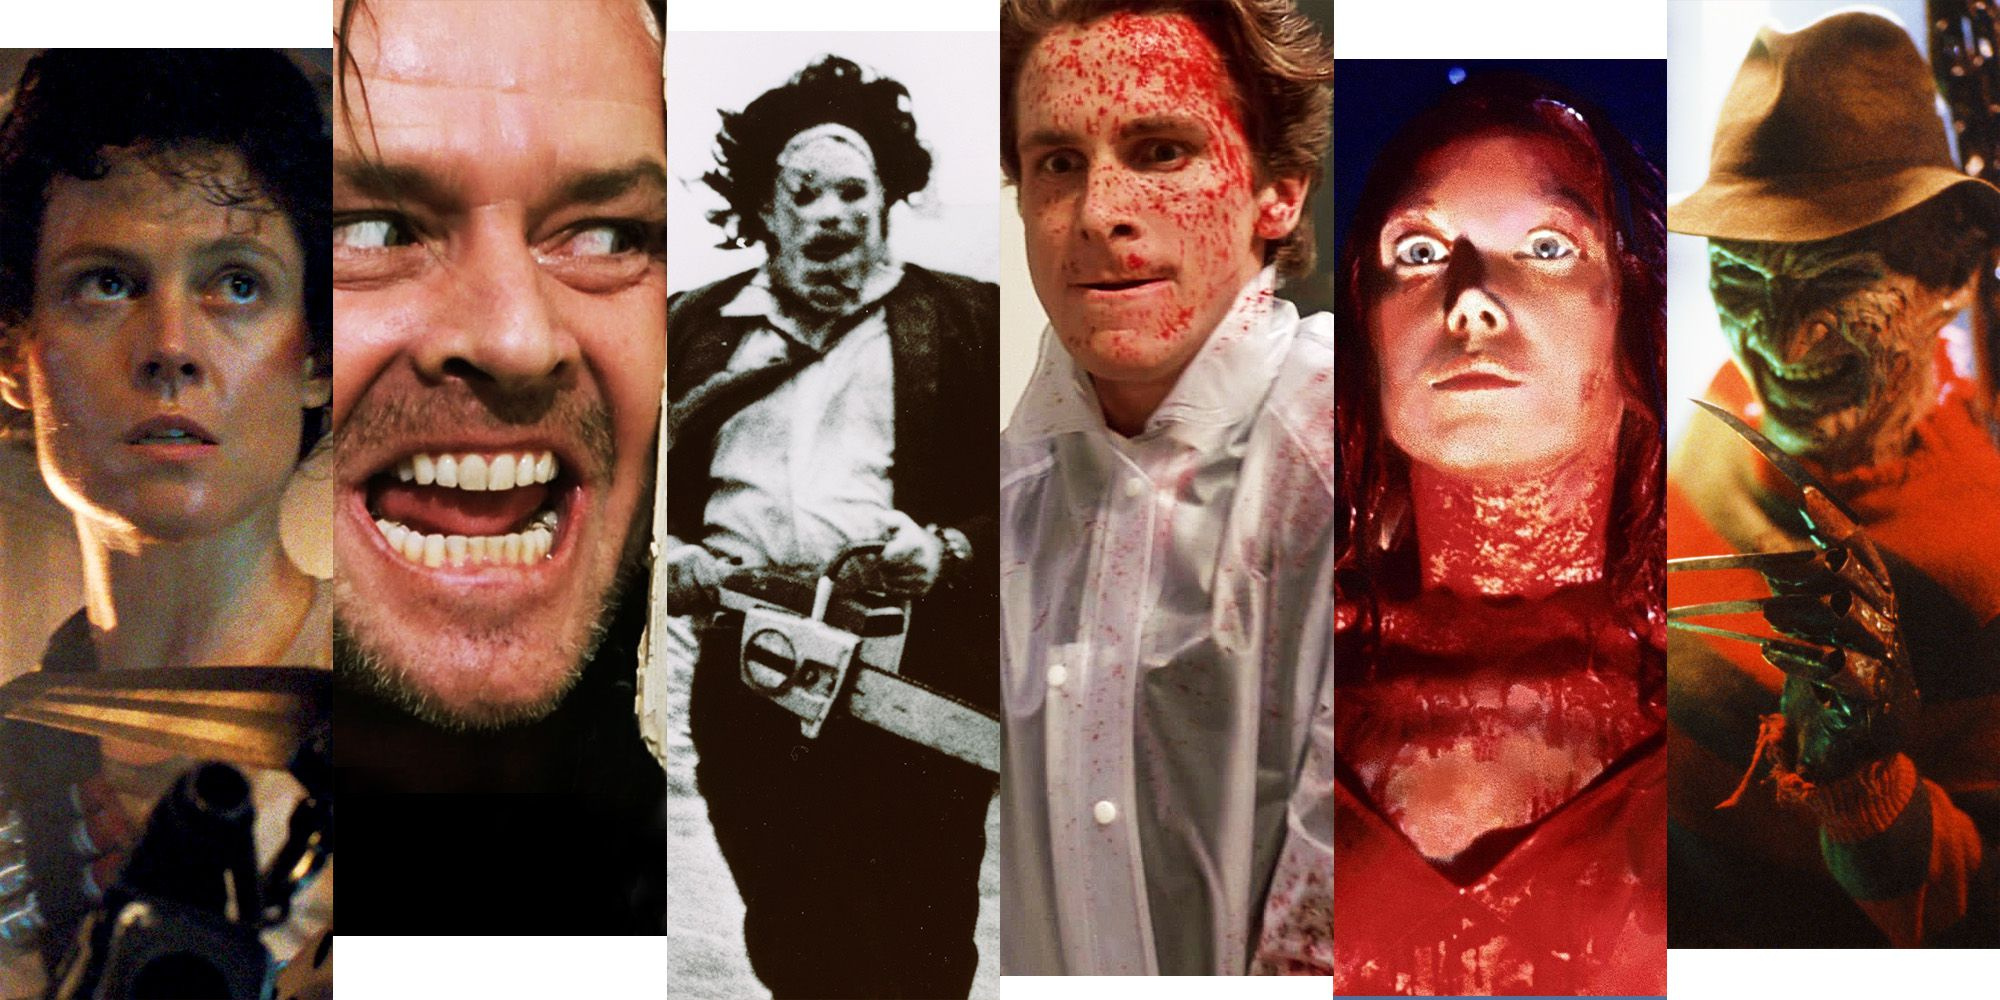 The Best of the Best For Halloween – The Top Five Scariest